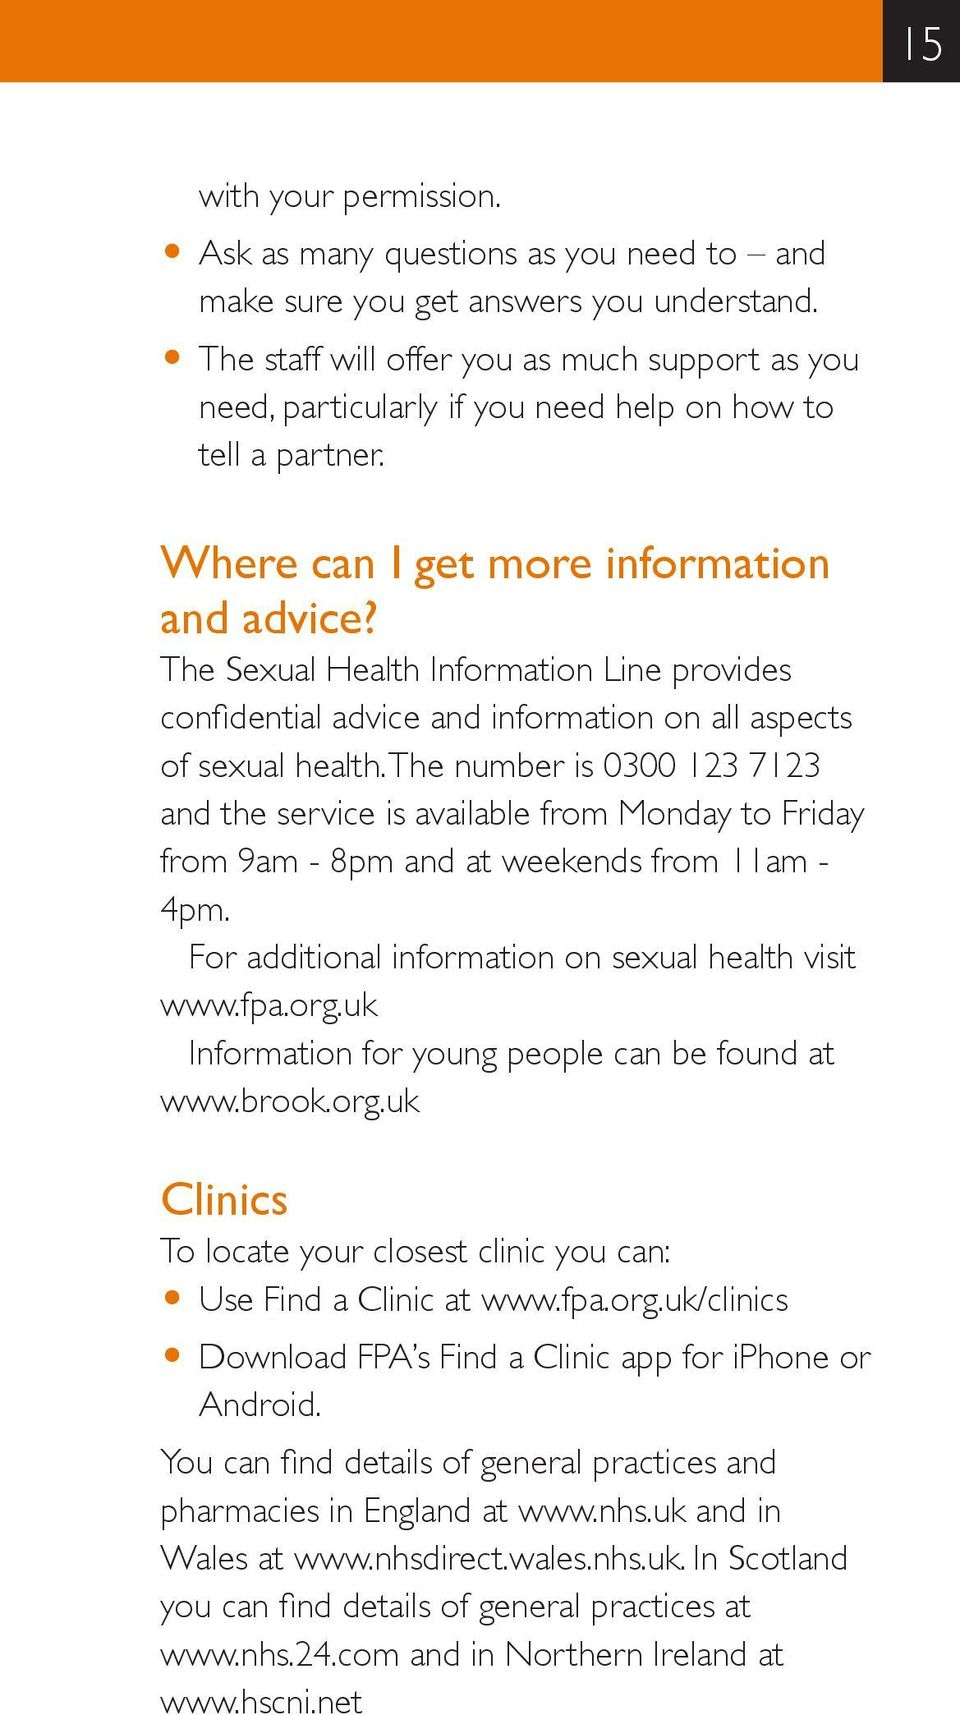 The Sexual Health Information Line provides confidential advice and information on all aspects of sexual health.